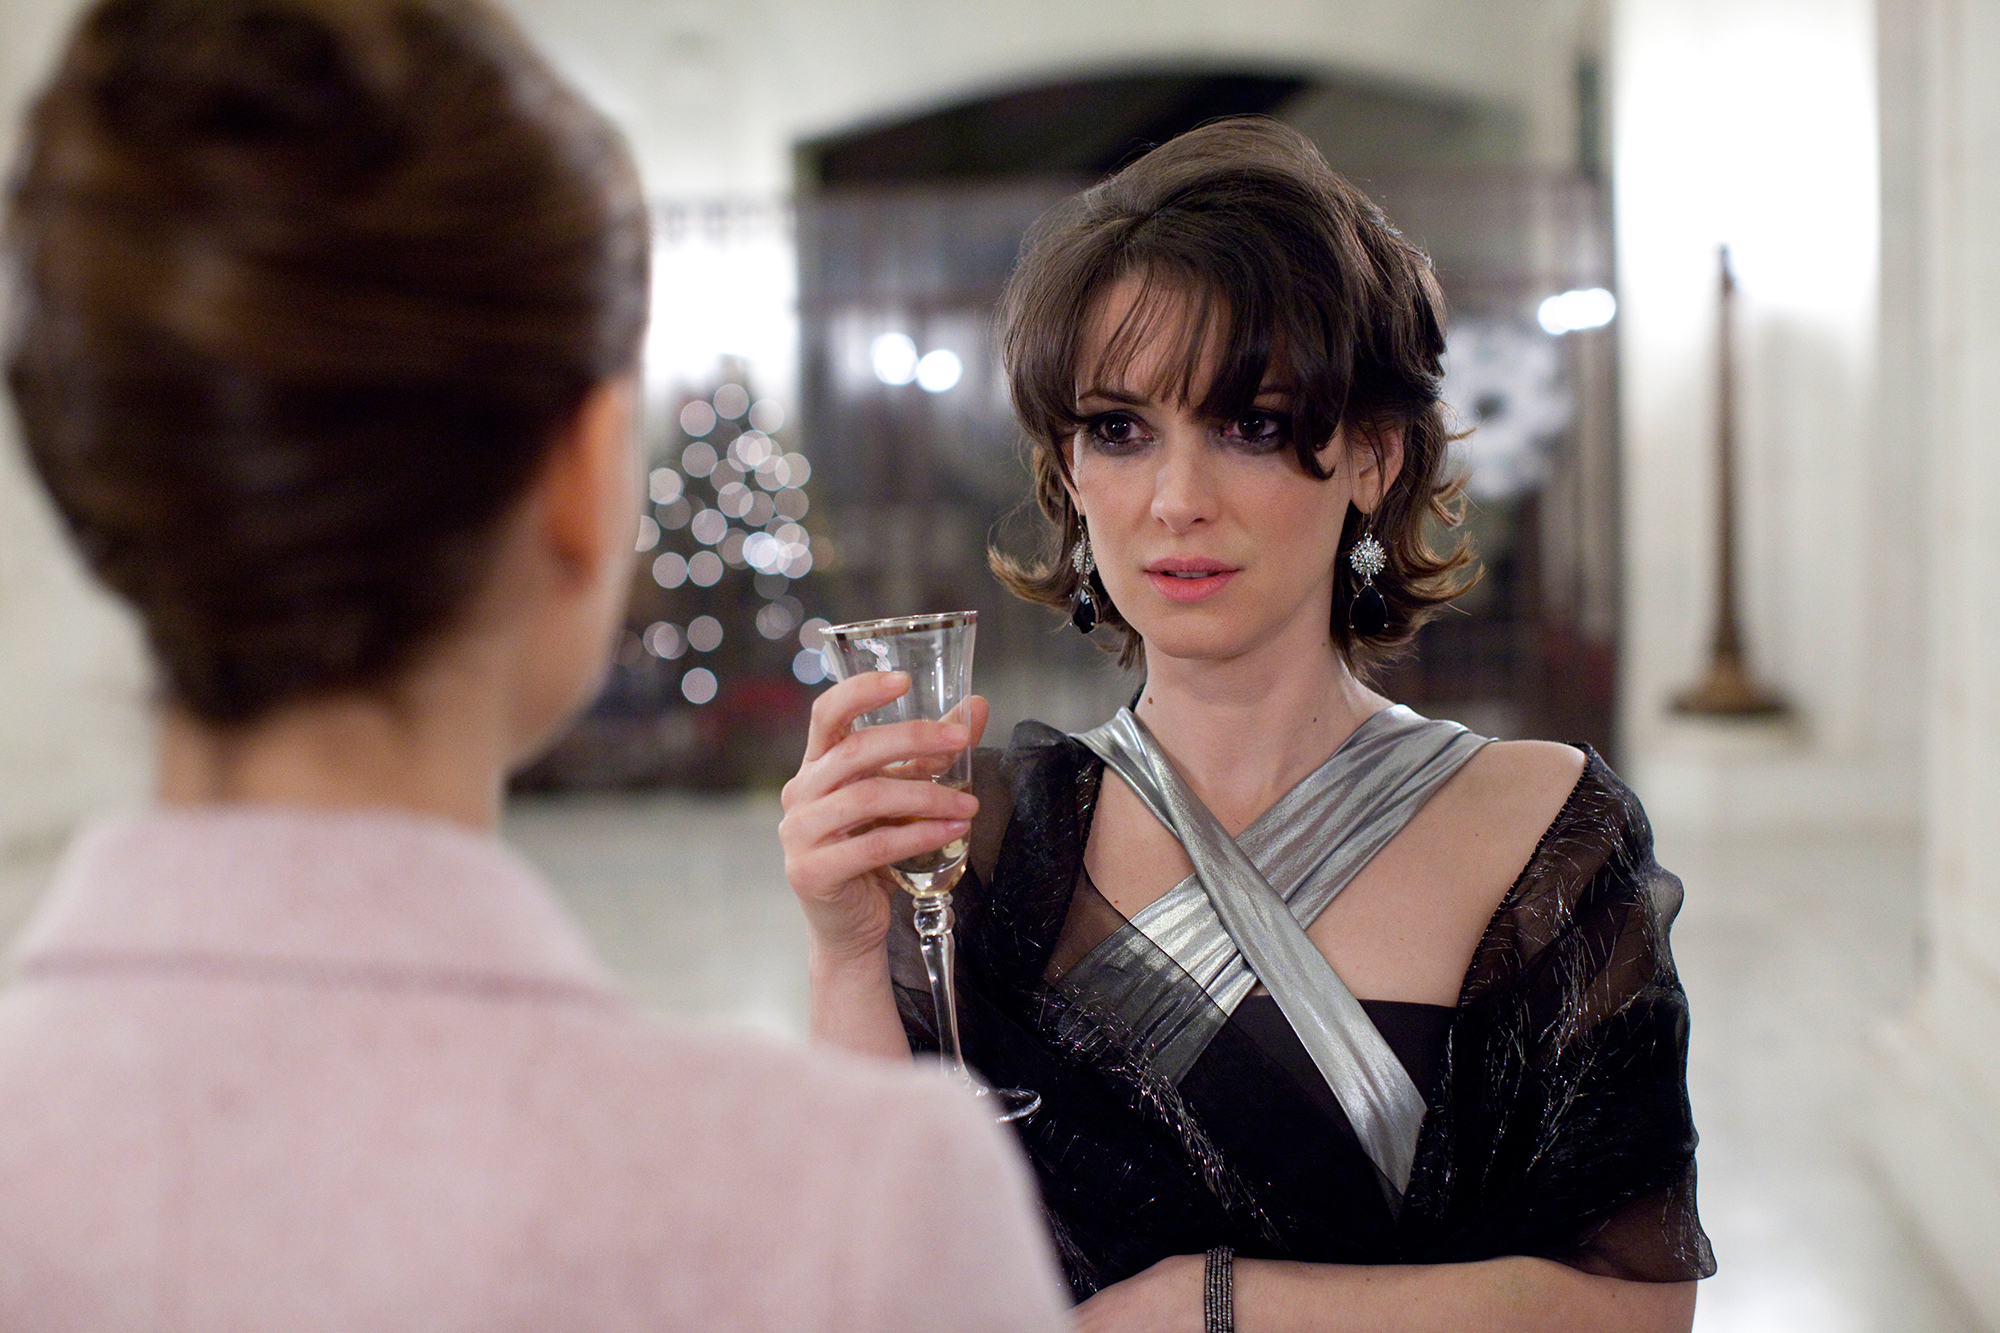 Winona Ryder in Black Swan in 2010.